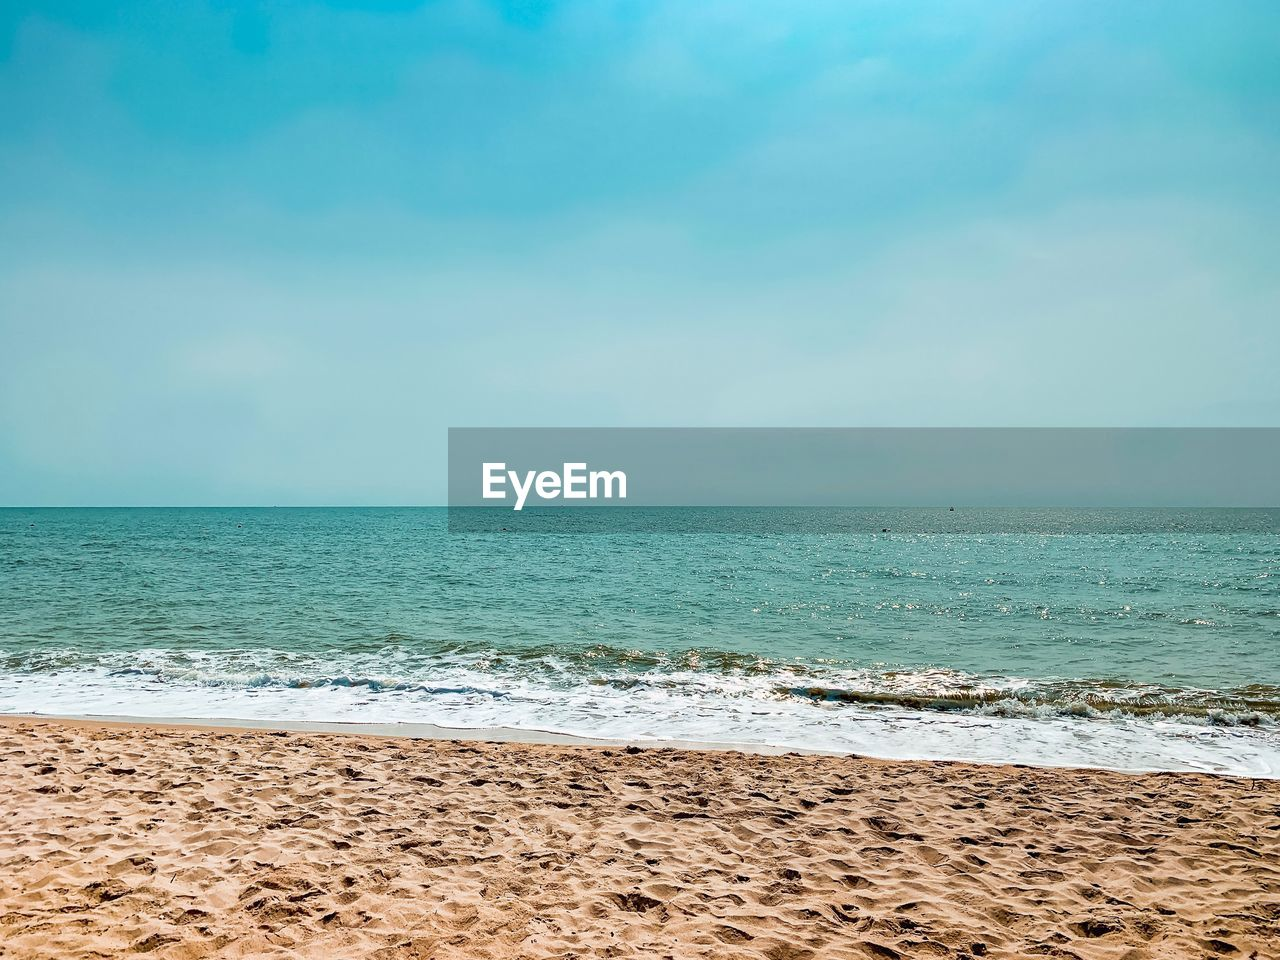 sea, water, horizon, beach, beauty in nature, land, sky, horizon over water, scenics - nature, tranquility, tranquil scene, sand, idyllic, blue, no people, nature, motion, wave, day, outdoors, turquoise colored